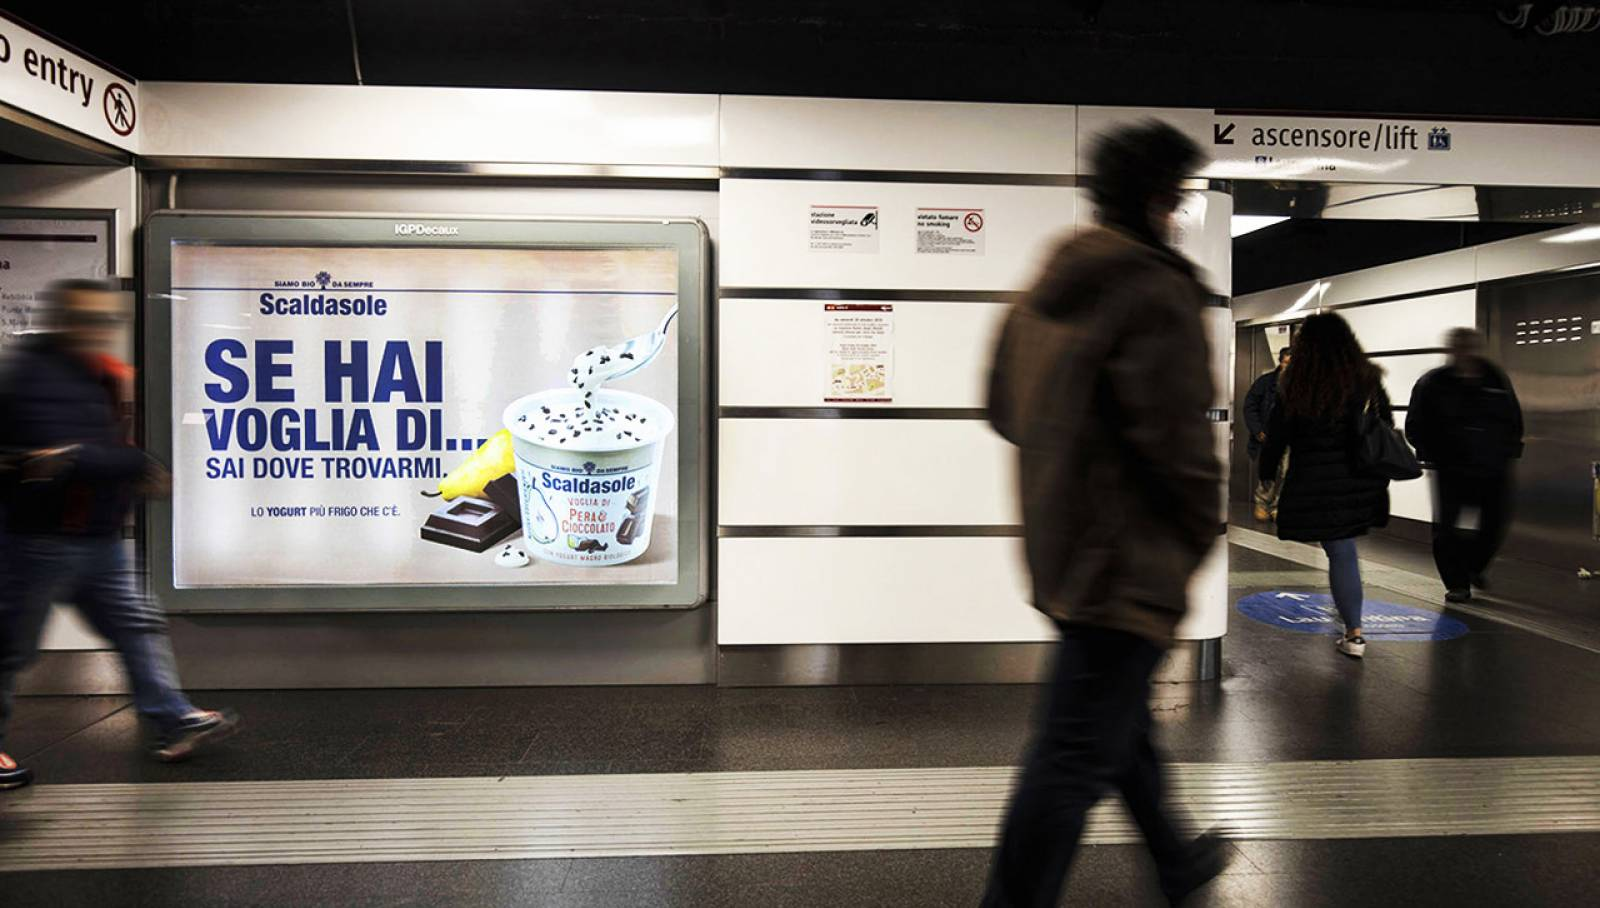 IGPDecaux OOH Underground advertising Landscape coverage Network in Rome for Scaldasole